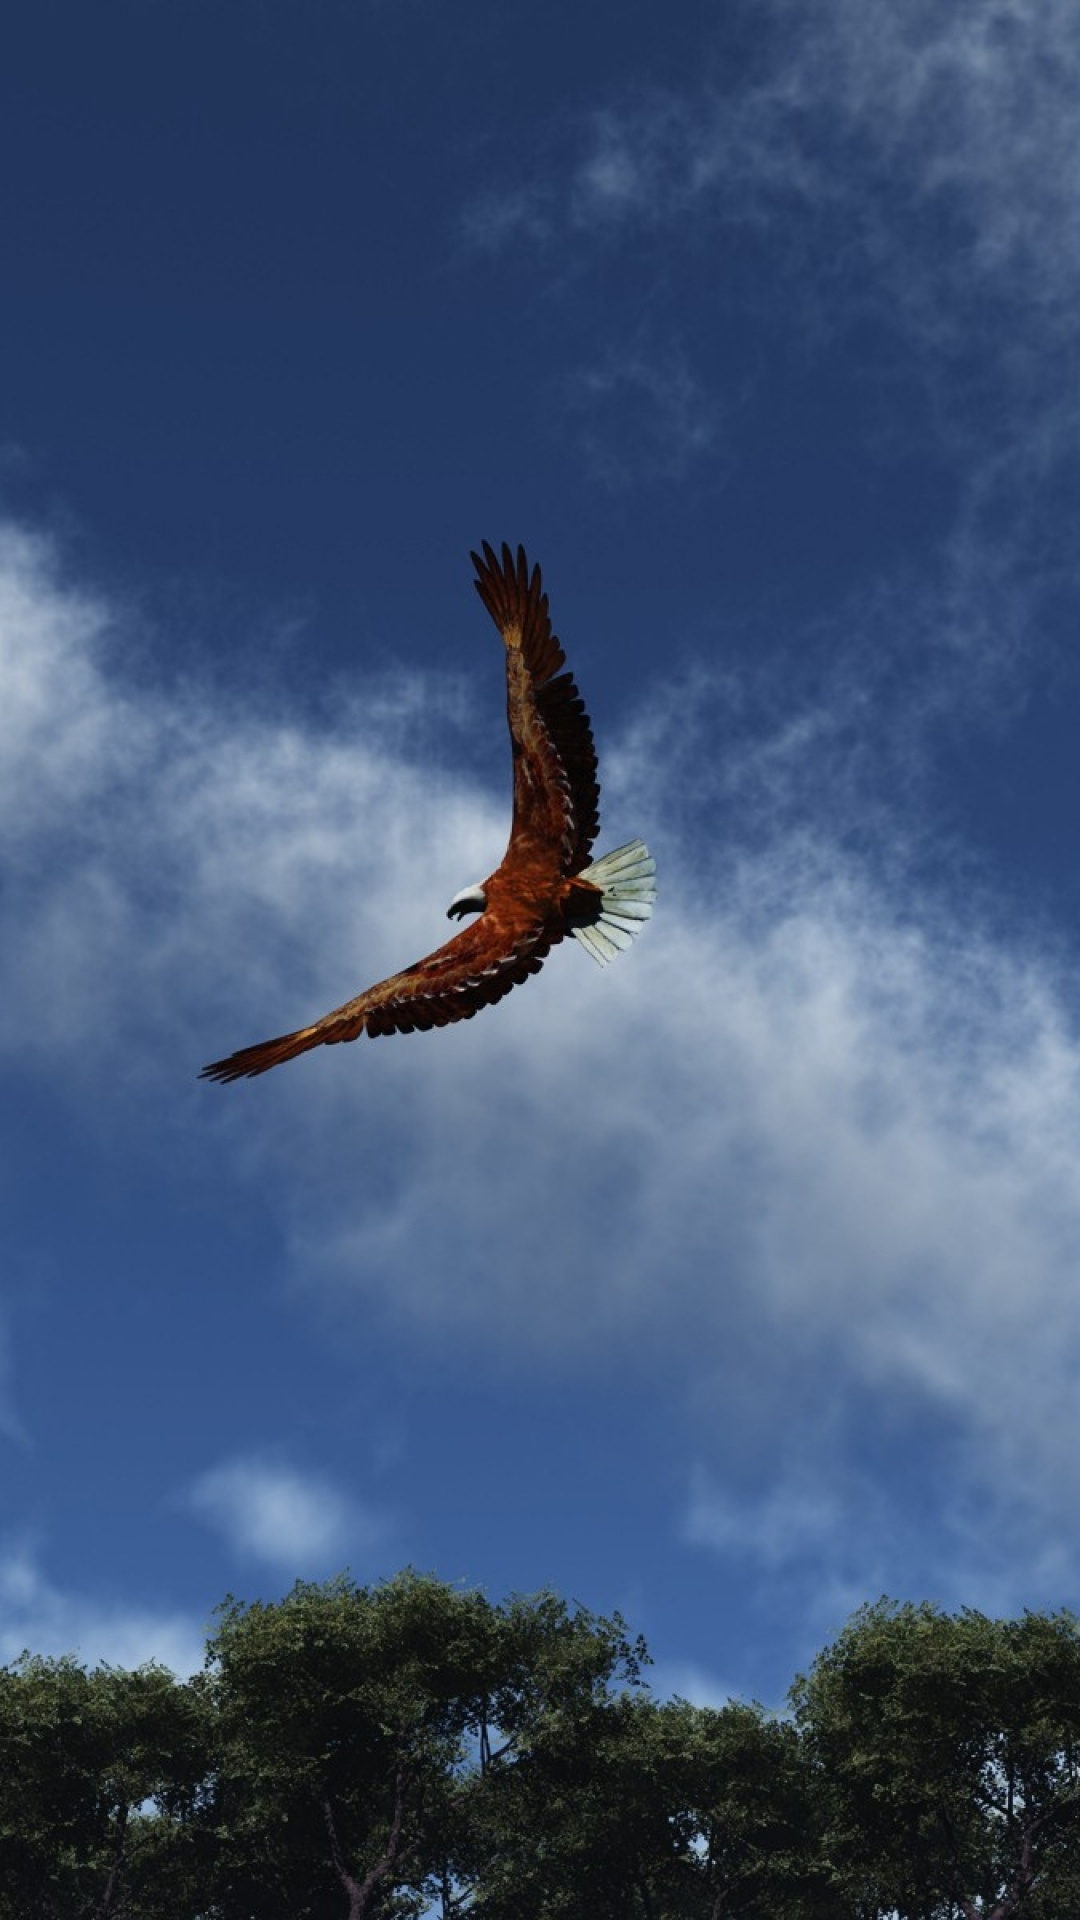 iphone wallpaper eagle sky clouds 3Wallpapers : notre sélection de fonds d'écran du 30/11/2017